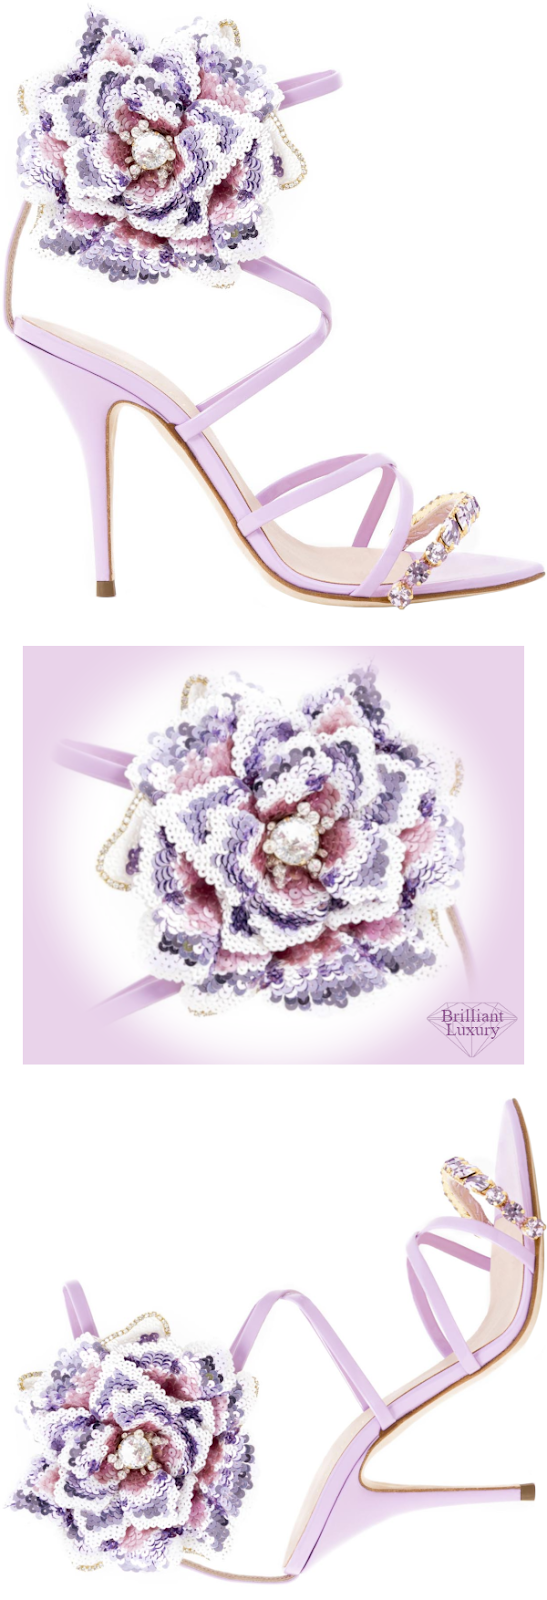 Brilliant-Luxury-Gedebe-Braided-Pink- Sandals-lavender-purple-floral-shoes-accessories-2019